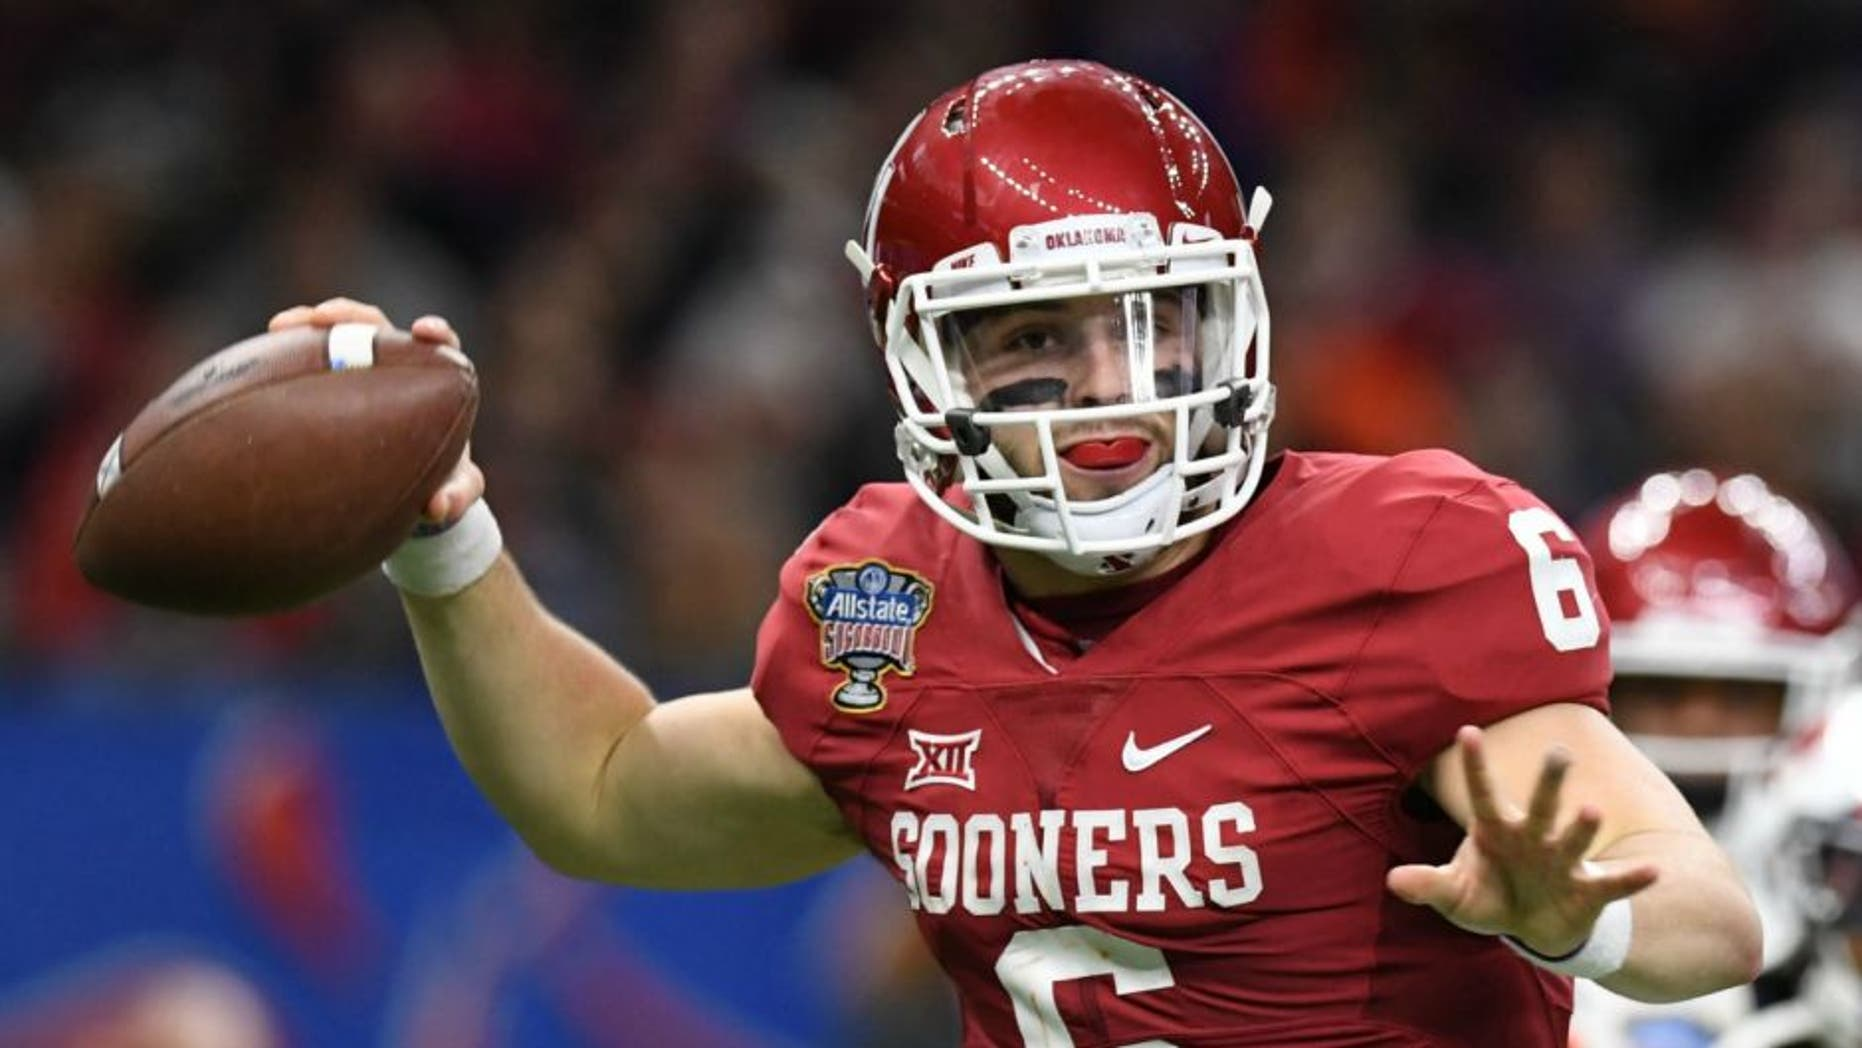 8f2517012 Oklahoma Sooners QB Baker Mayfield was arrested early Saturday in Arkansas  on charges of public intoxication